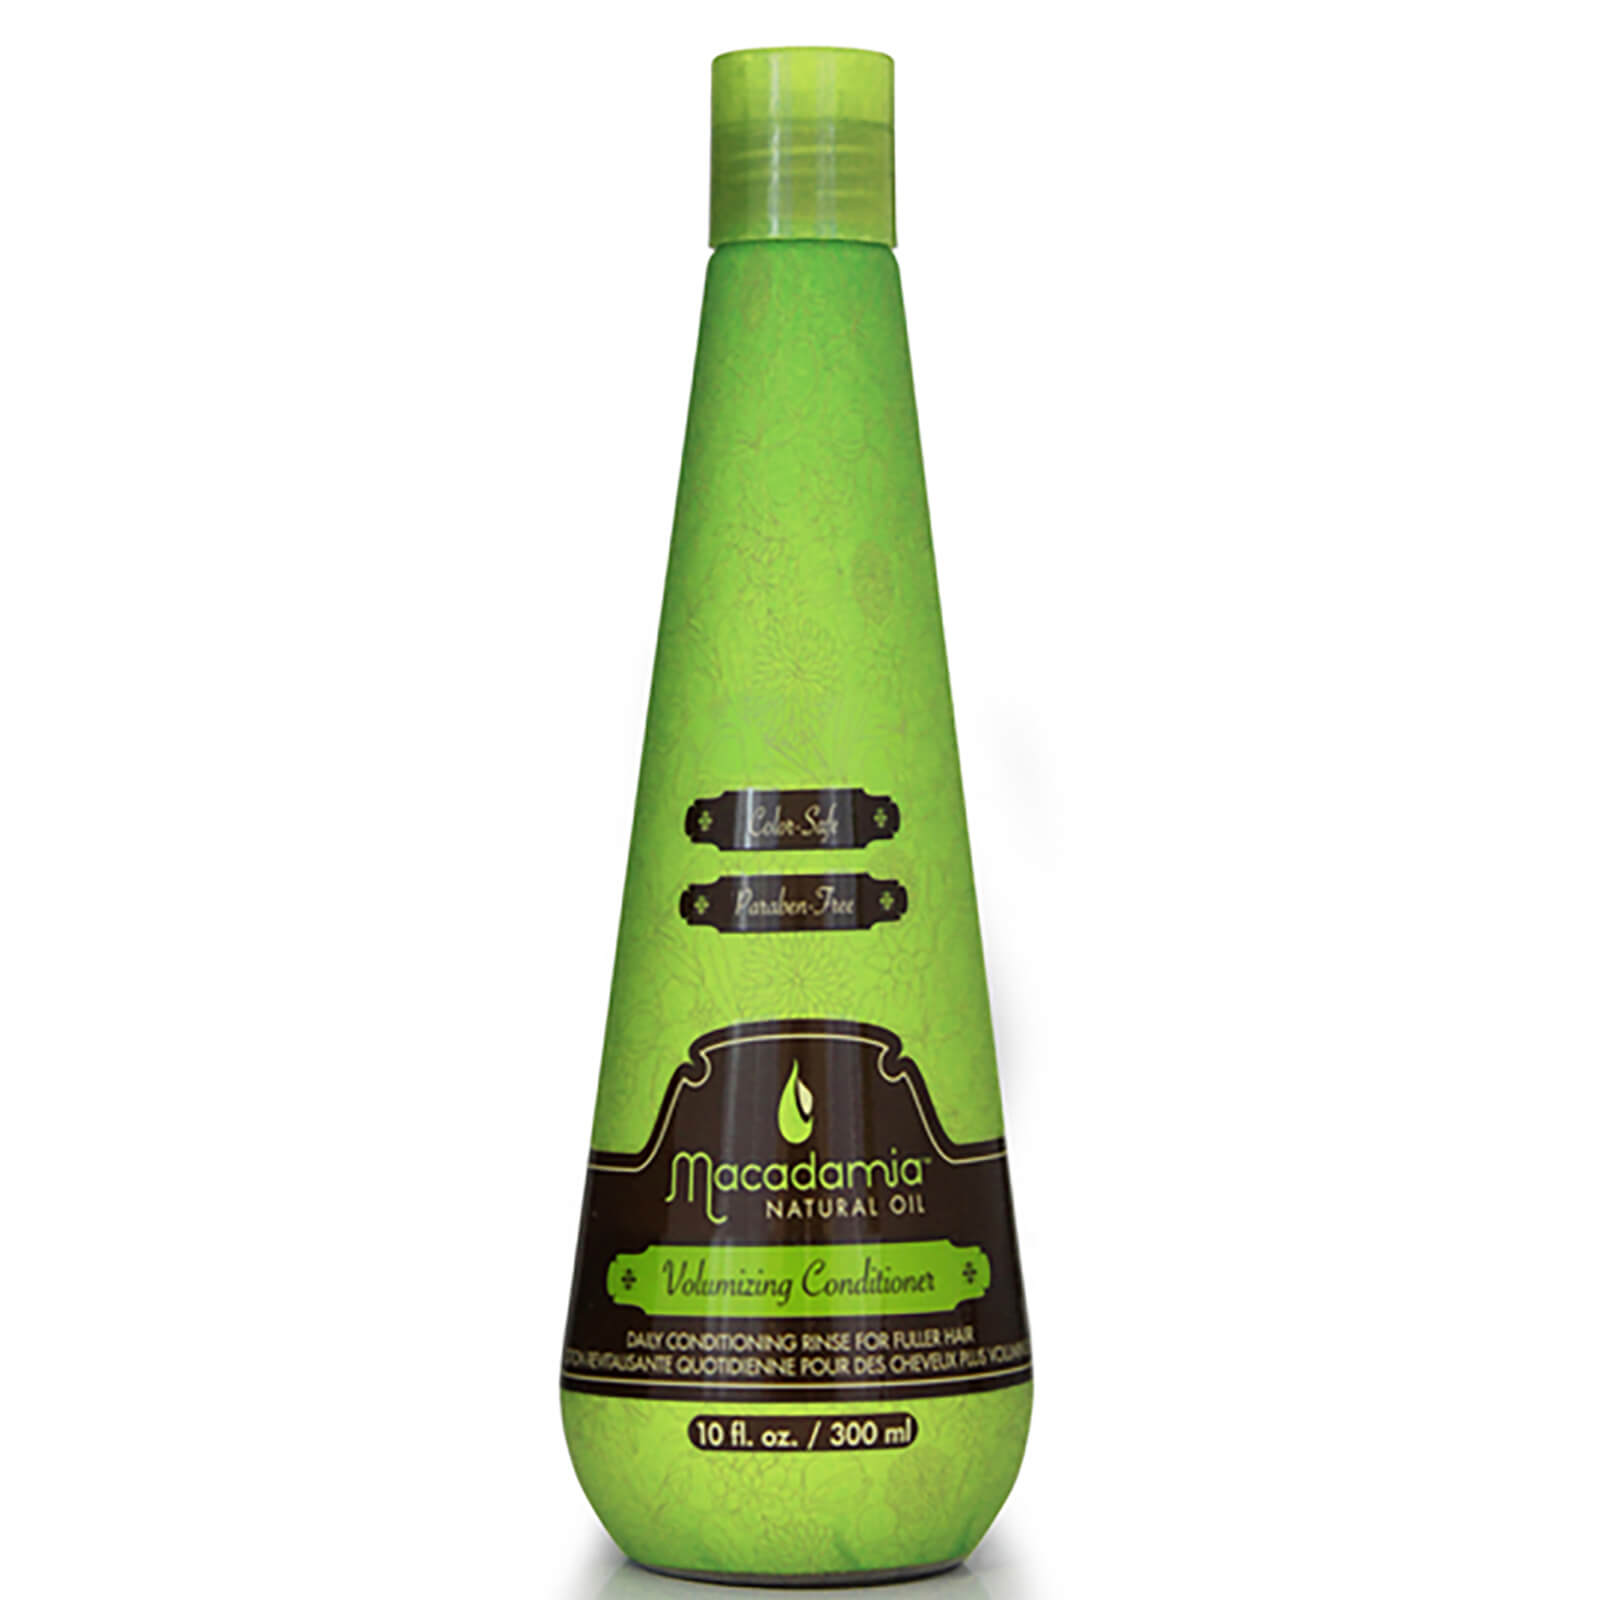 Macadamia Volumising Conditioner 300ml